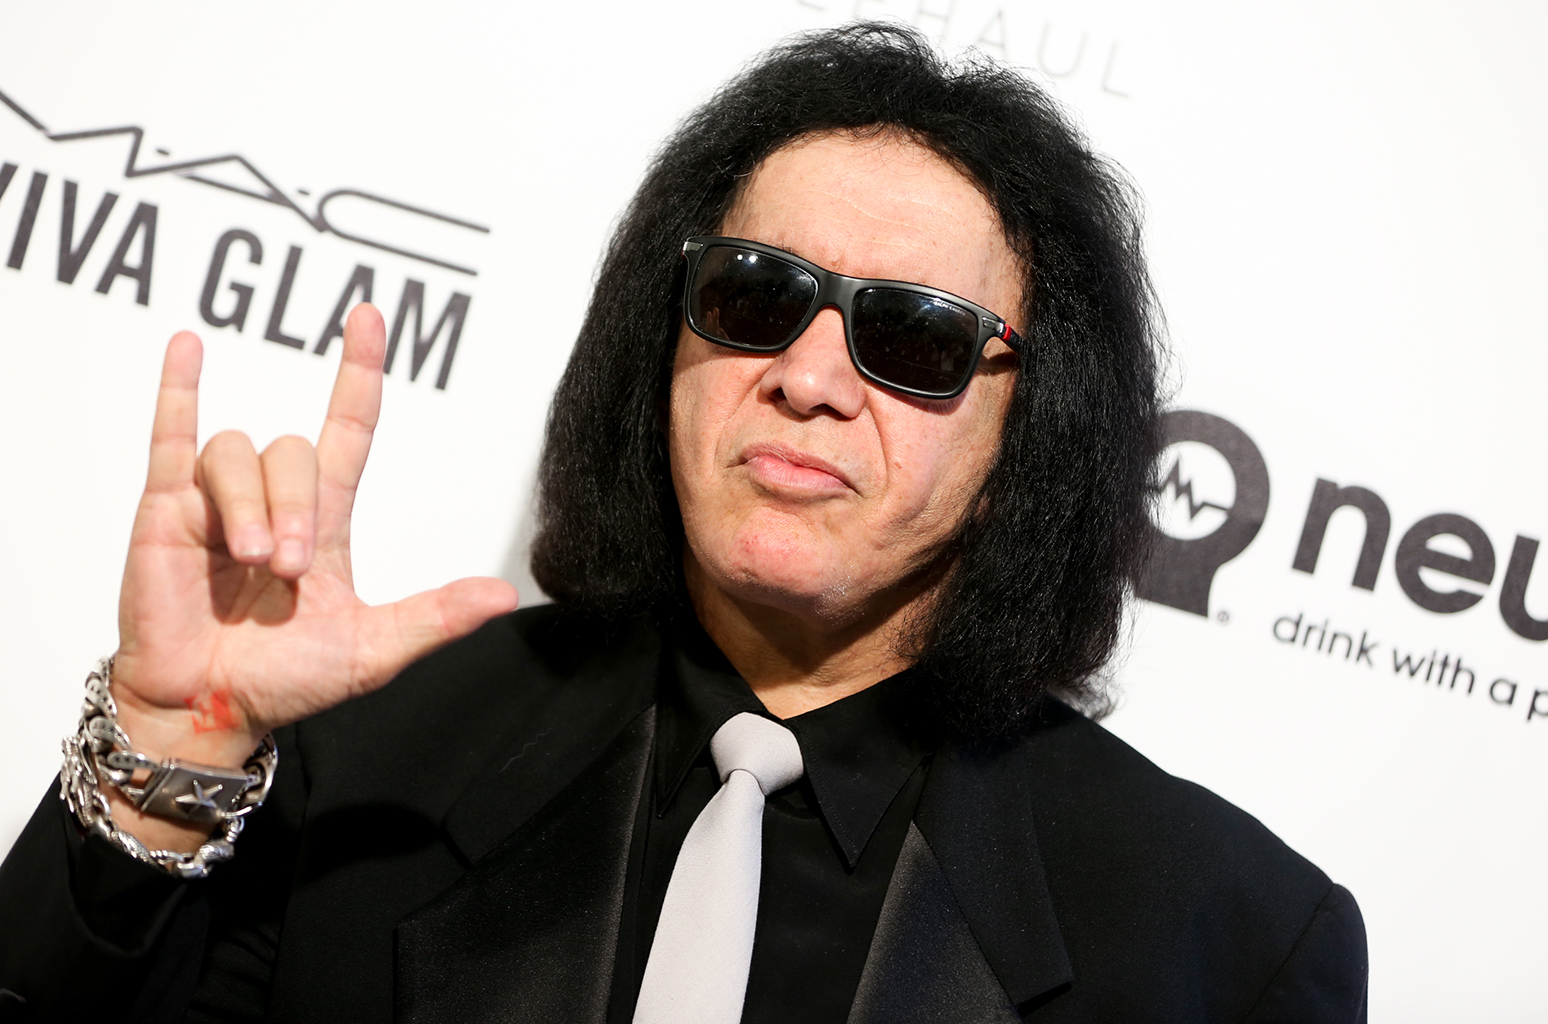 Gene Simmons arrives at the 2016 Elton John AIDS Foundation Oscar Viewing Party at West Hollywood Park on Sunday, Feb. 28, 2016, in West Hollywood, Calif. (Photo by Rich Fury/Invision/AP)